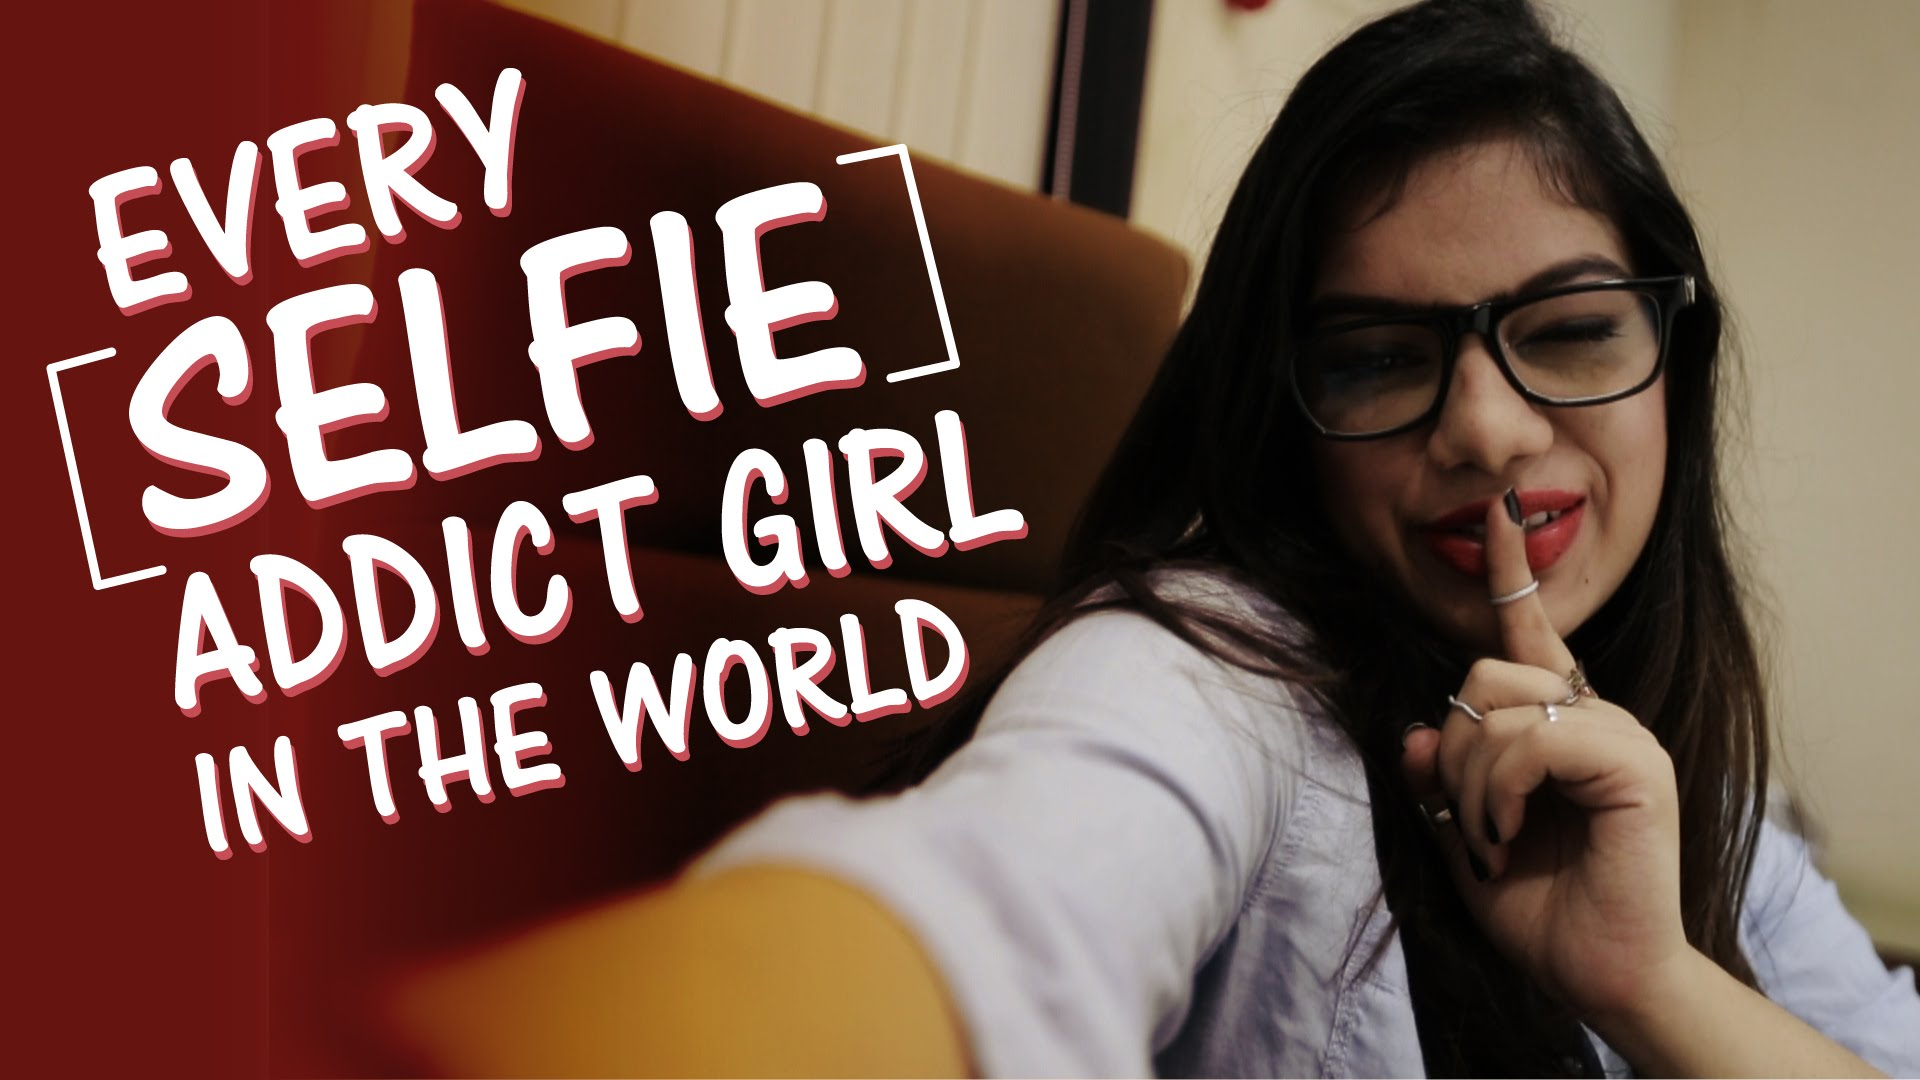 Video: Every Selfie Addict Girl In The World